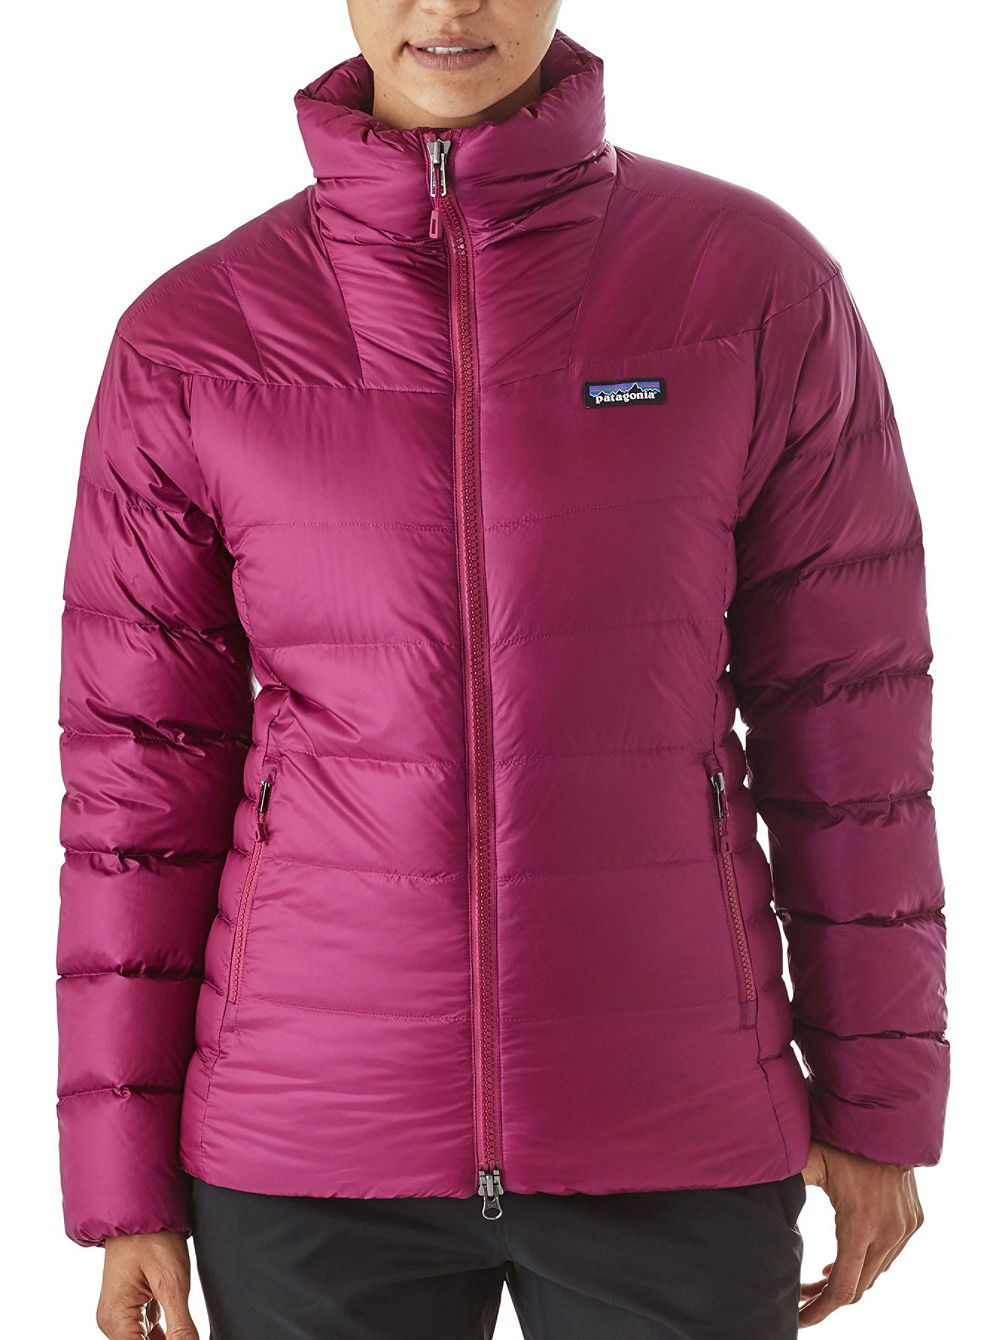 Buy Patagonia Fitz Roy Down Fleece Jacket online at blue-tomato.com